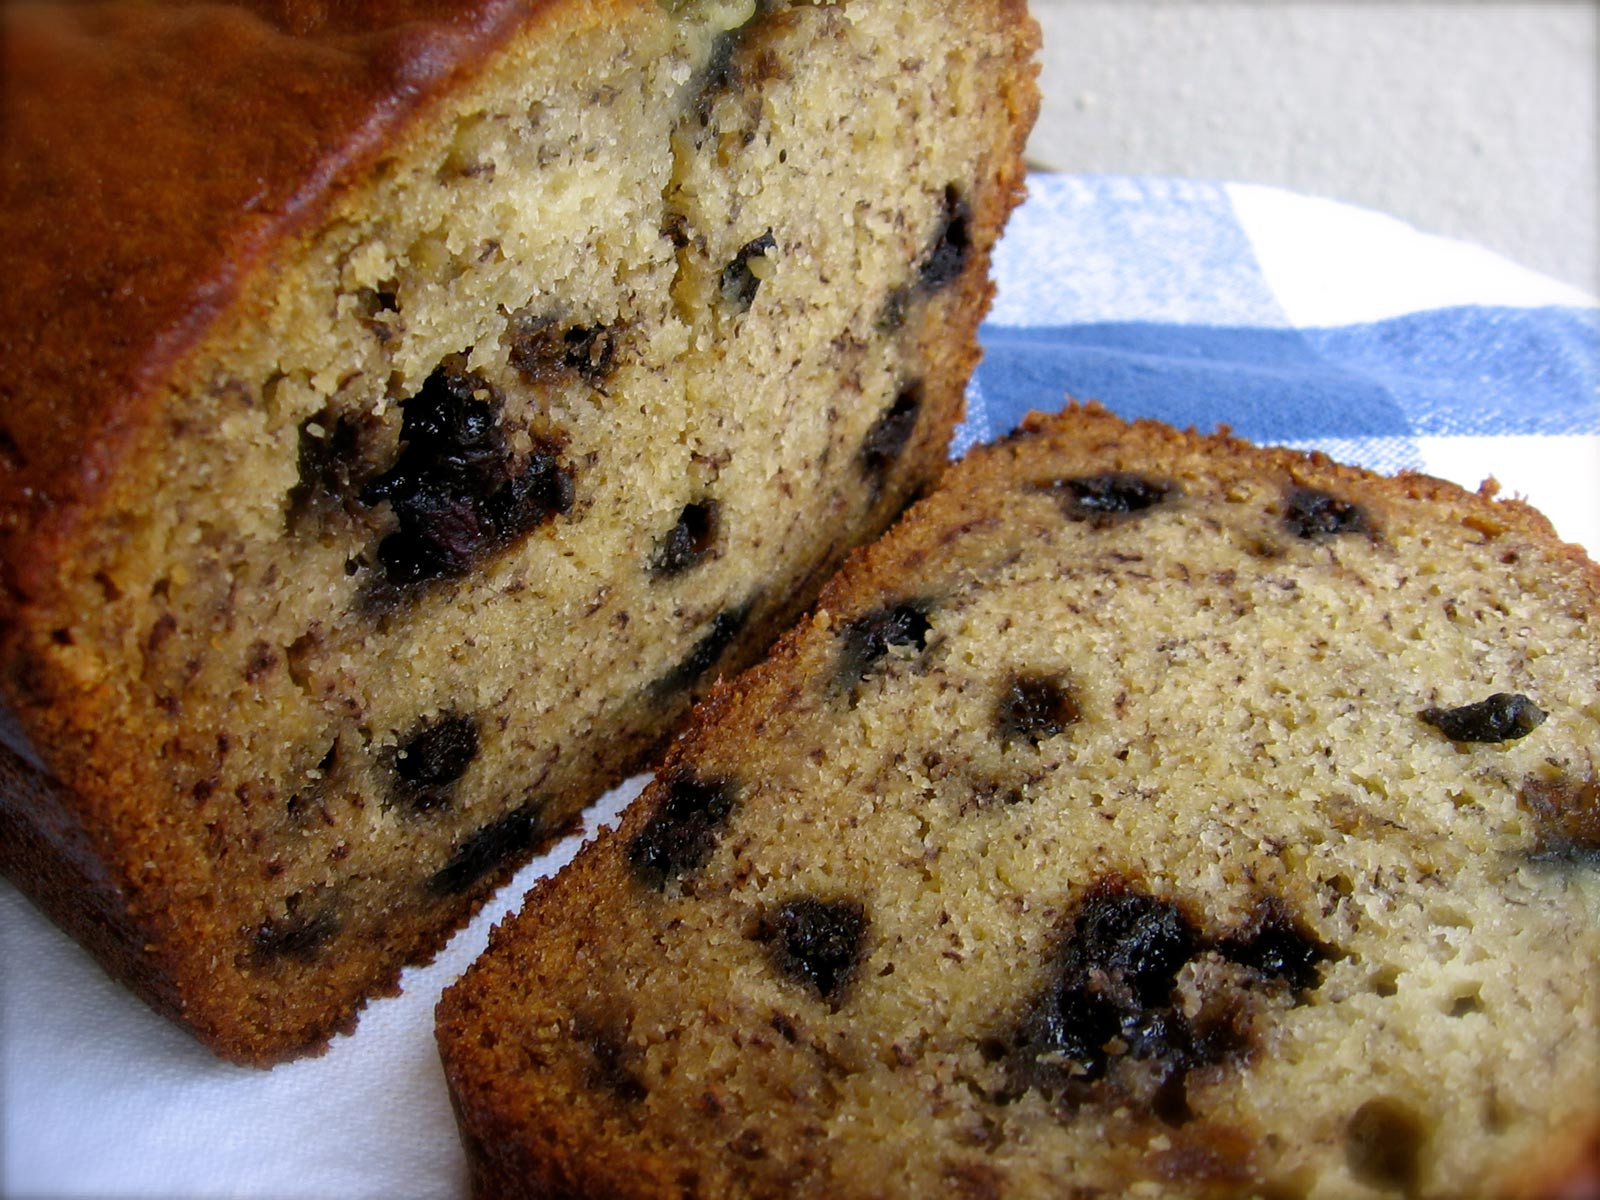 Healthy Banana Nut Bread Recipe  PHOTOS 20 Bread Flavours You Can Make At Home [RECIPES